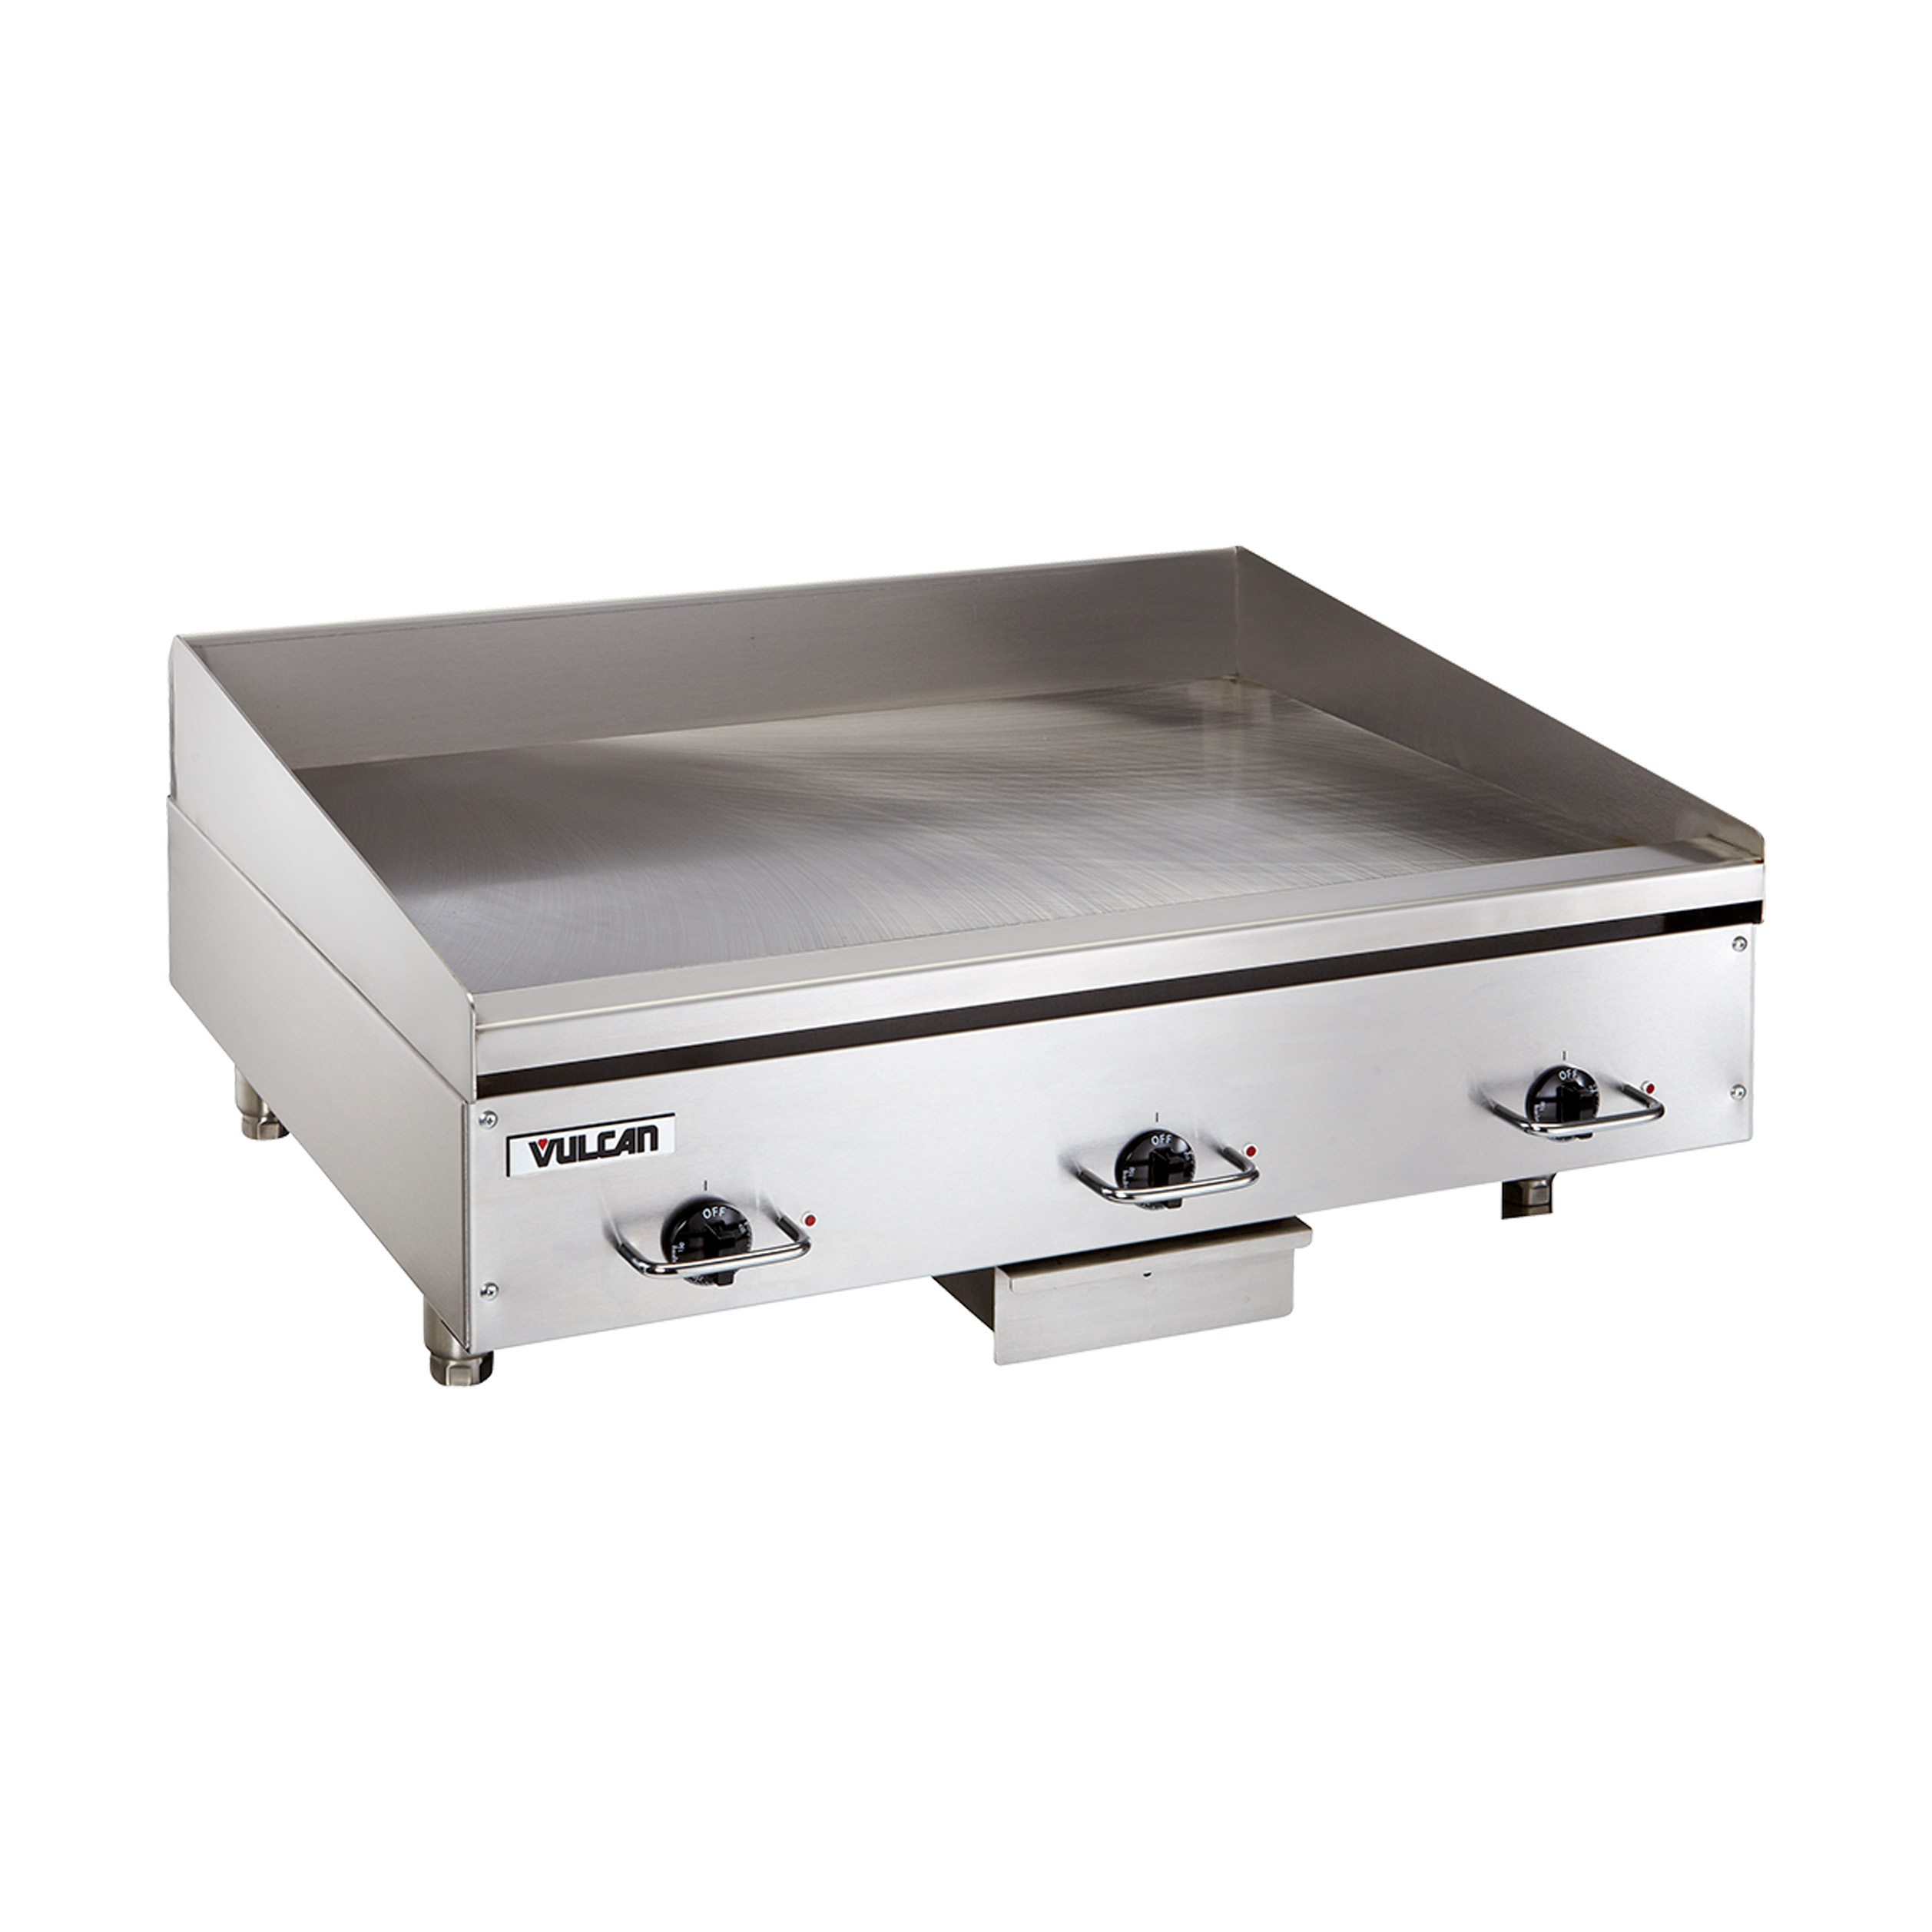 Vulcan HEG60E griddle, electric, countertop